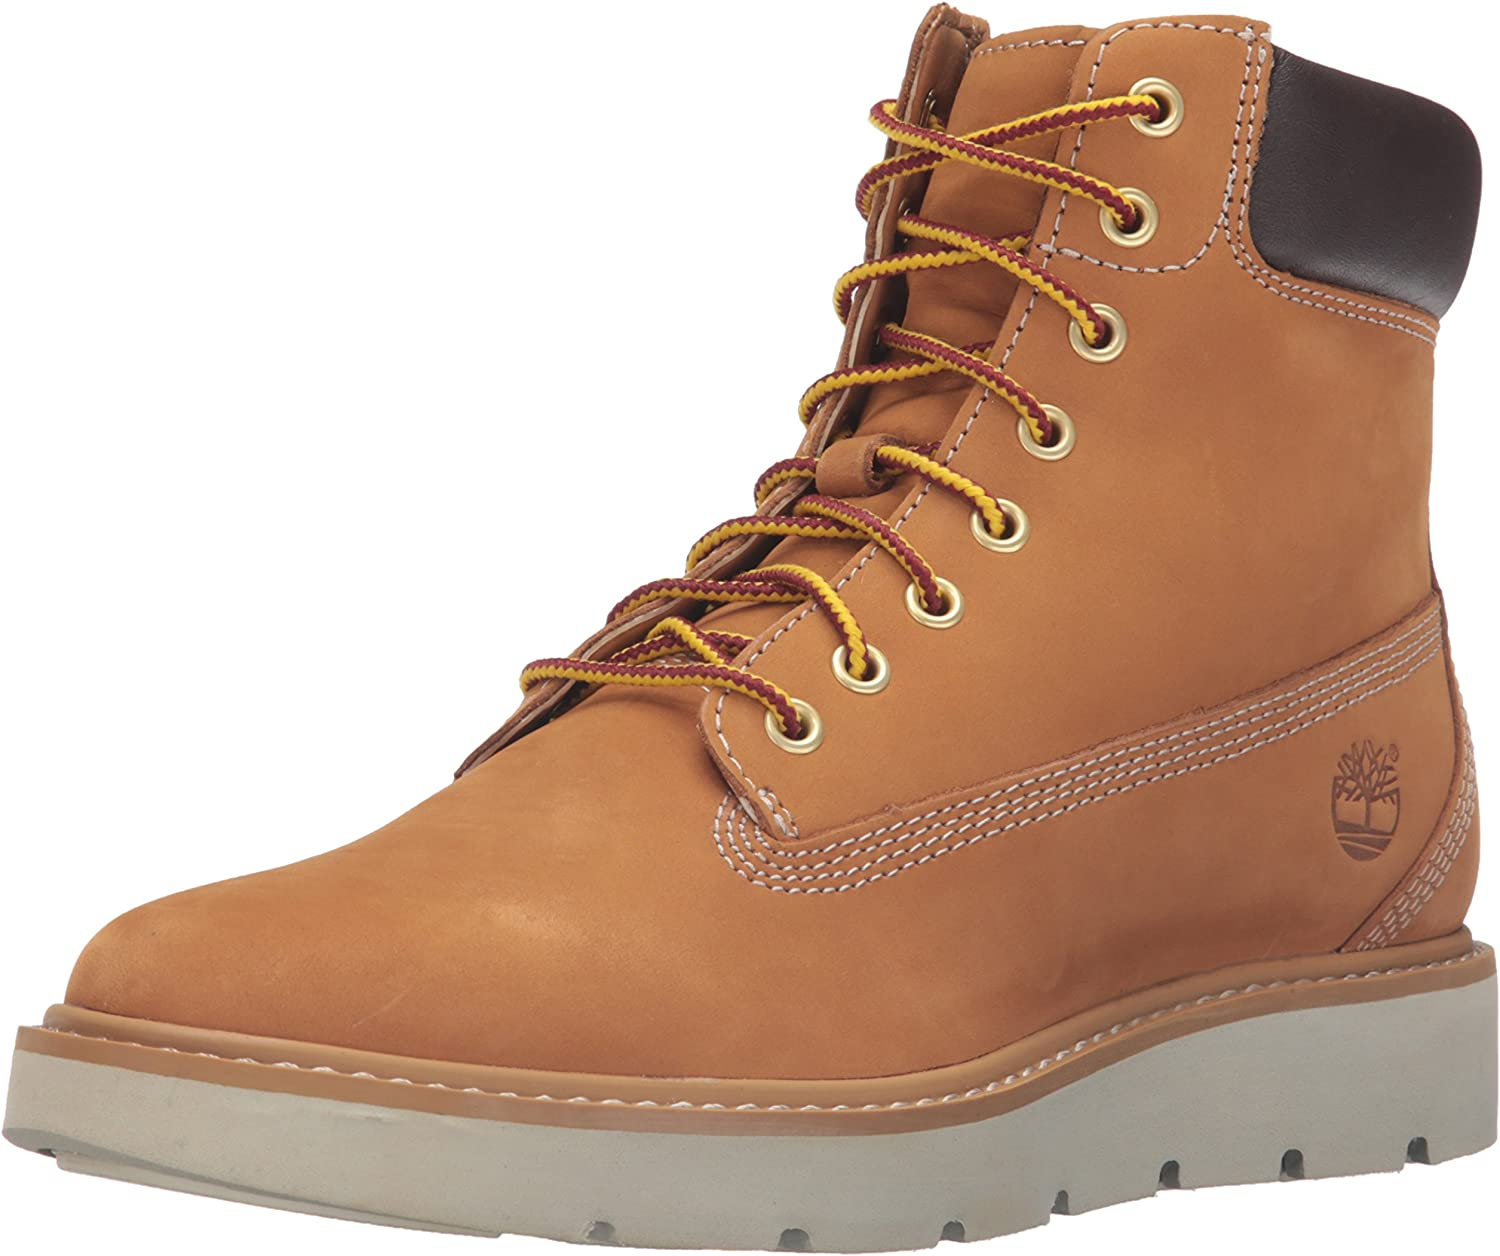 Timberland Women's Kenniston 6 inch Lace Up Boot, Wheat